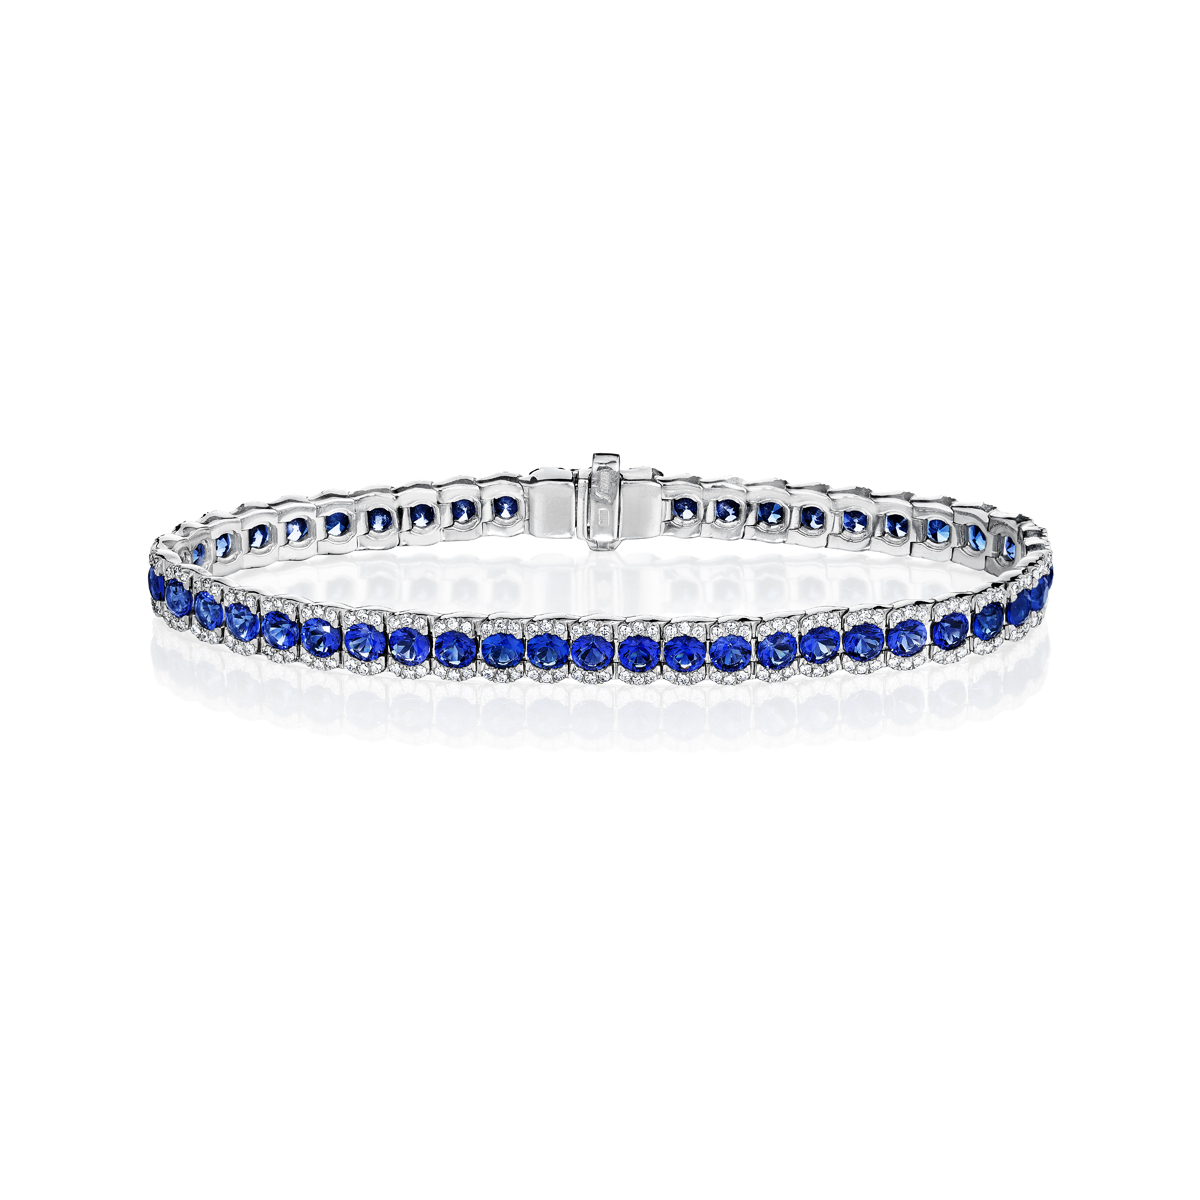 Brilliant in Blue Sapphire and Diamond Bracelet - This brilliant in blue sapphire and diamond bracelet comes in a variety of material types like 14k white gold, yellow gold, rose gold and can be customized with your jeweler. Fana gemstone bracelets are perfect for that special woman in your life.